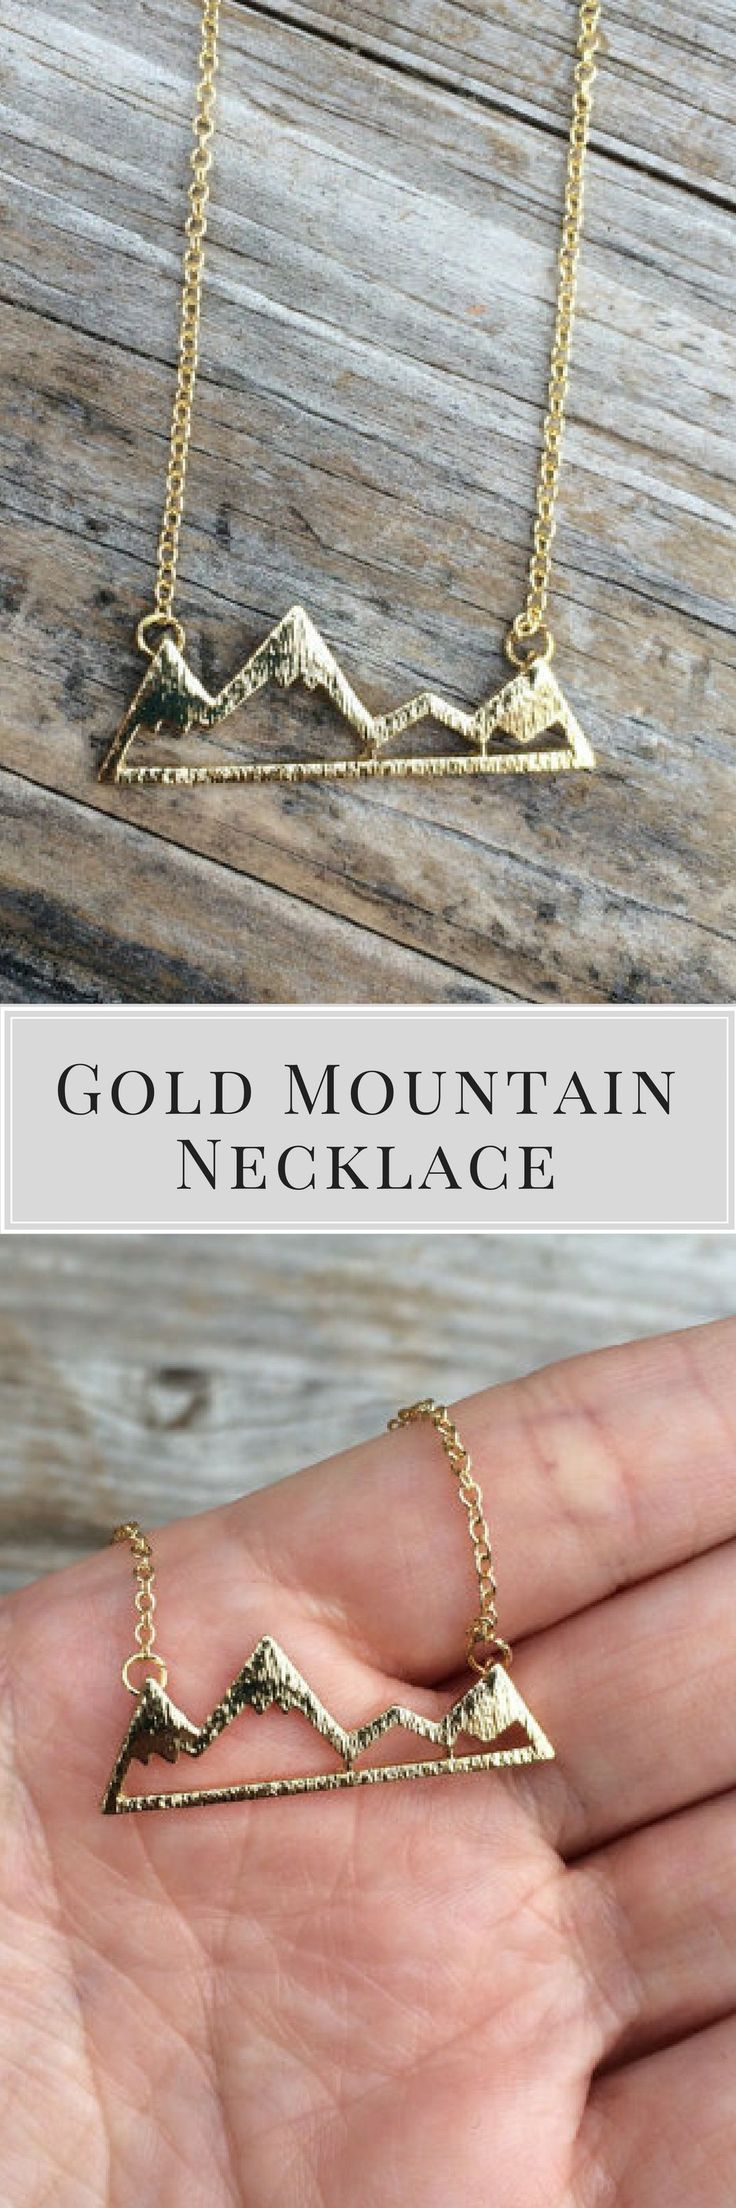 Gold Mountain Necklace, Mountain Charm Necklace, California Necklace, Northwest Necklace, Gift for her, 18k Gold, Womens fashion, Women's Fashion #giftideas #ad #womensfashion